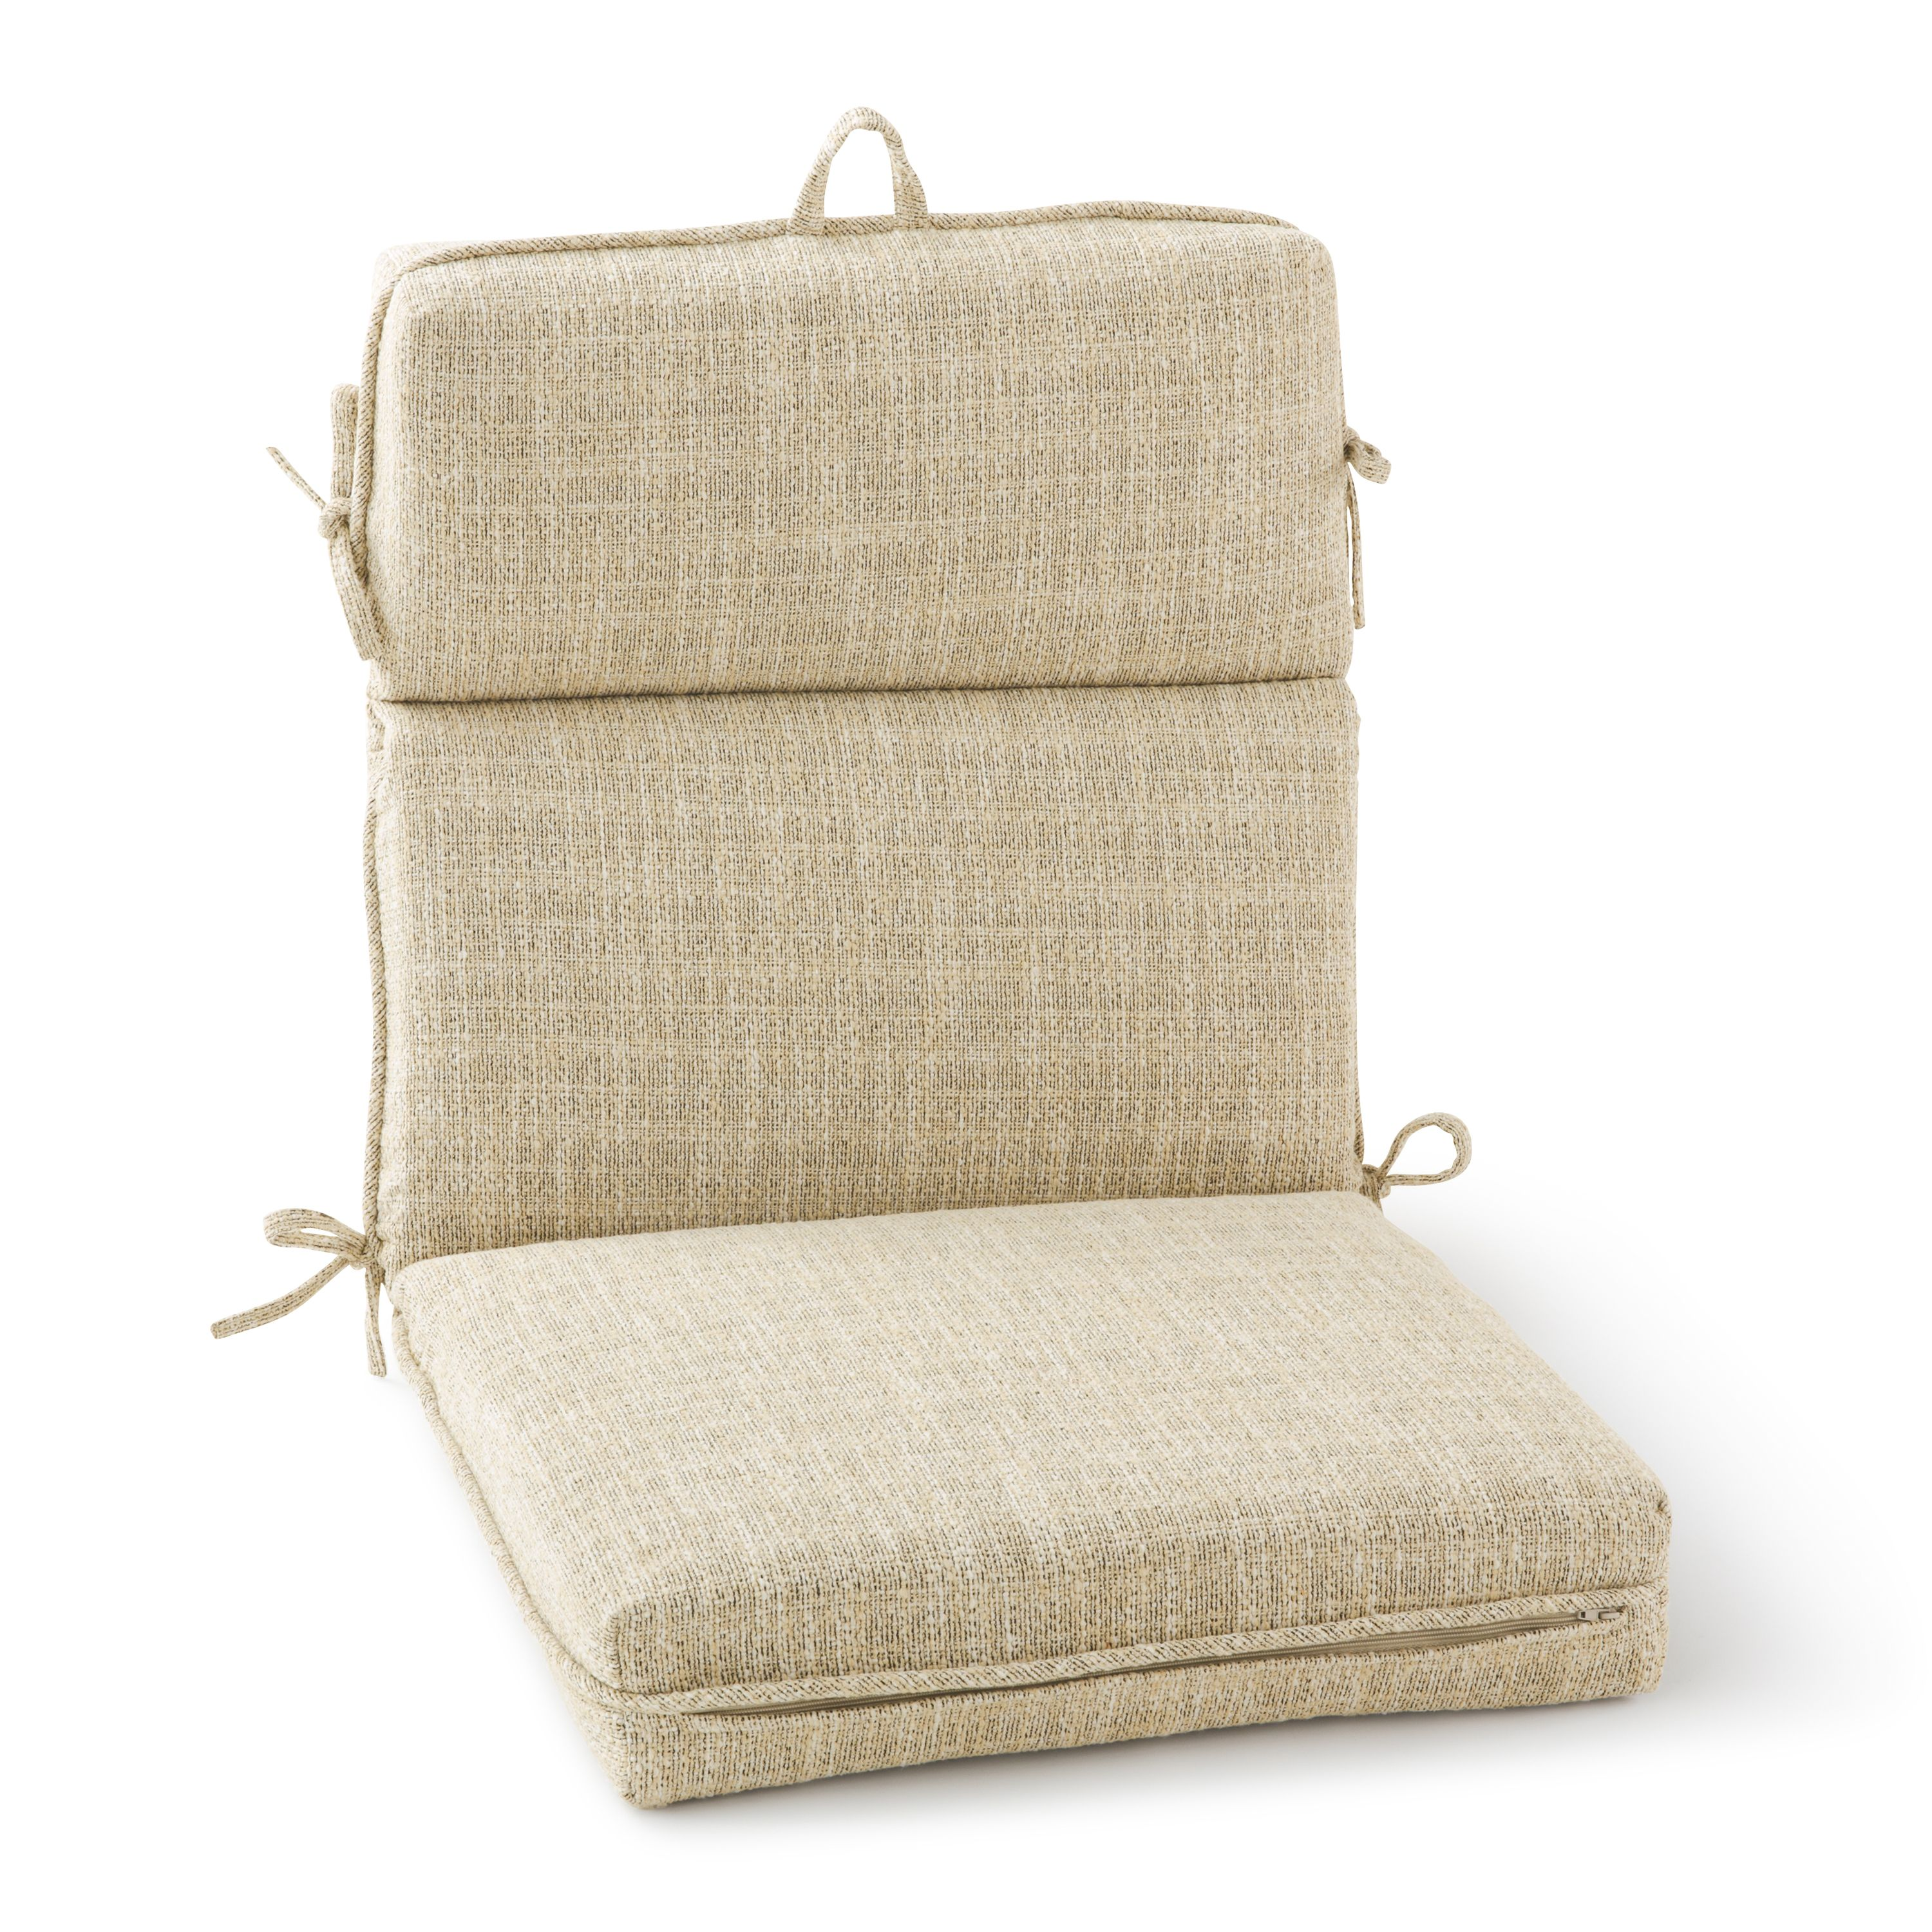 Better Homes Gardens High Back Outdoor Chair Cushion In Jute 21 X 44 Walmart Com Walmart Com